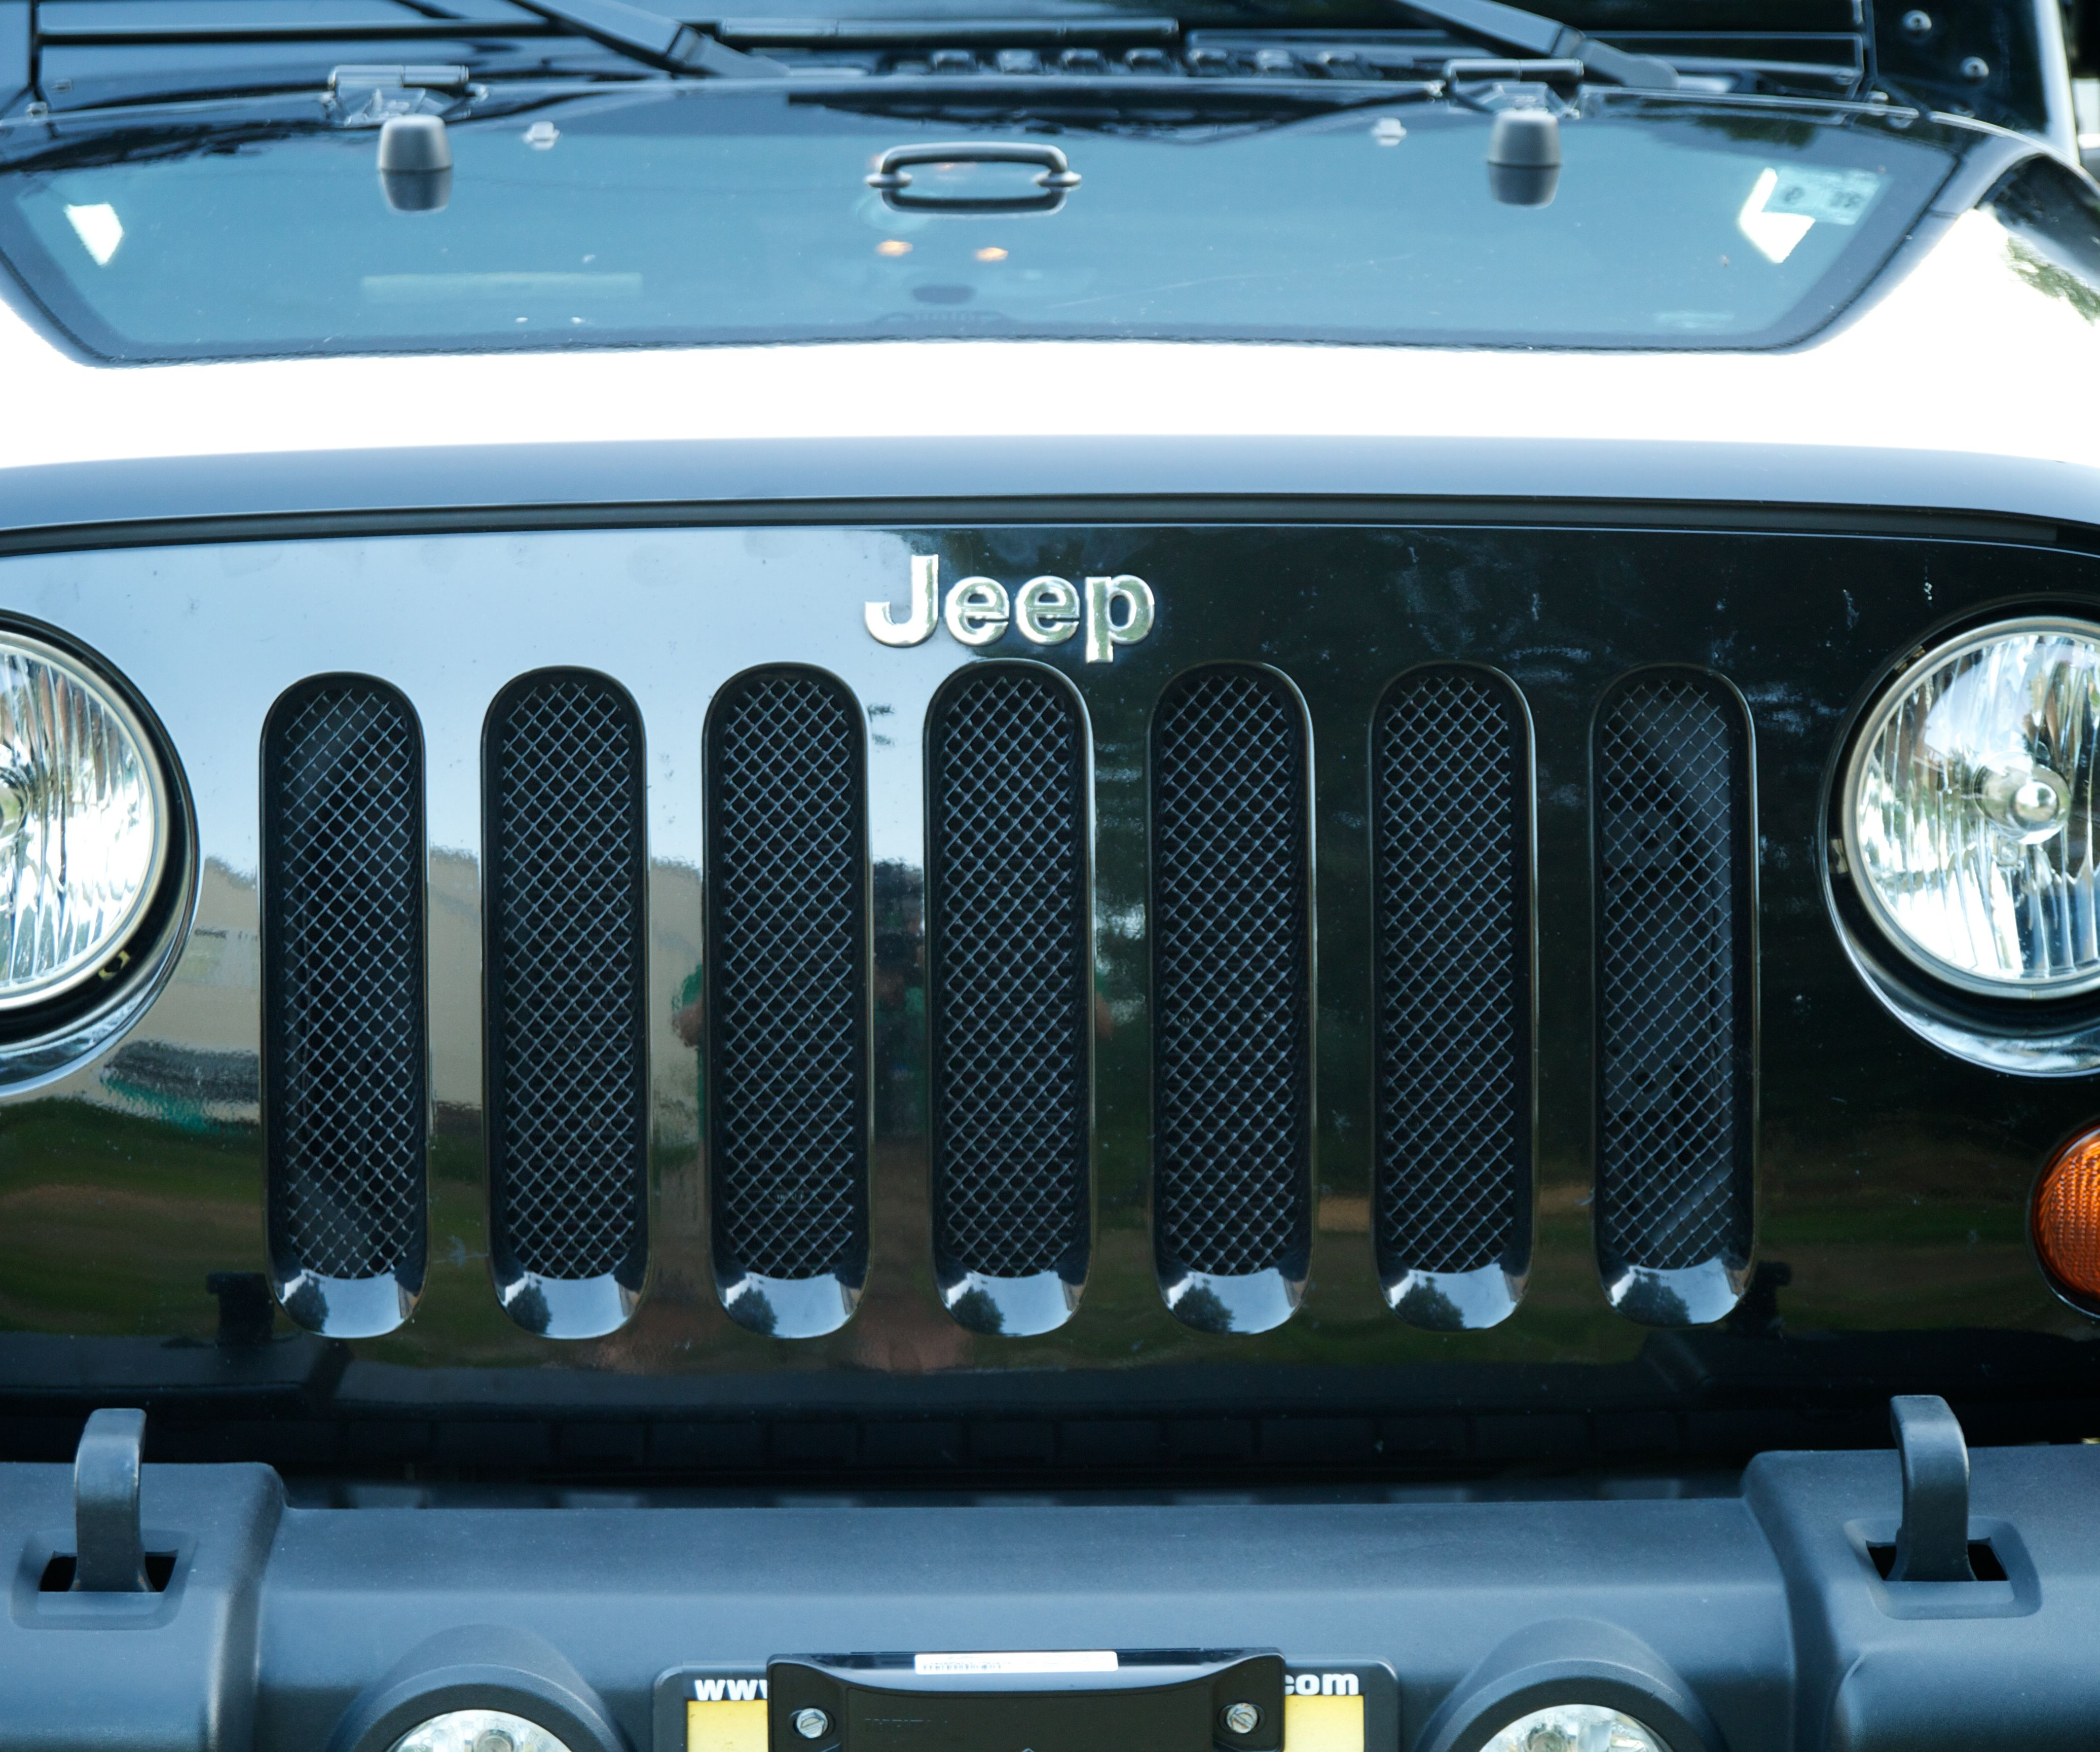 DIY Mesh Grill Guards for a Jeep Wrangler for about $10